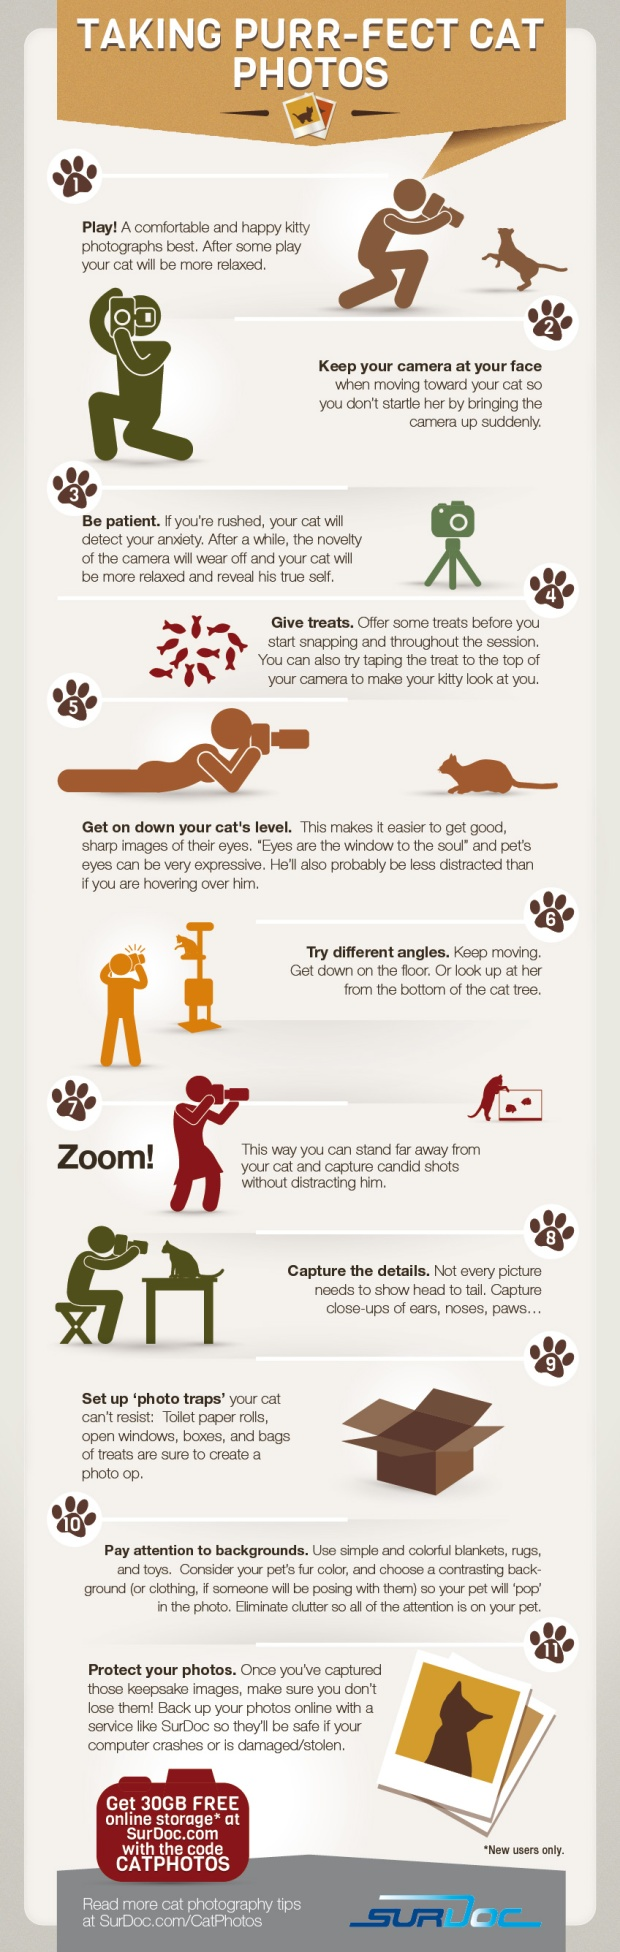 purrfect-cat-photos-infographic